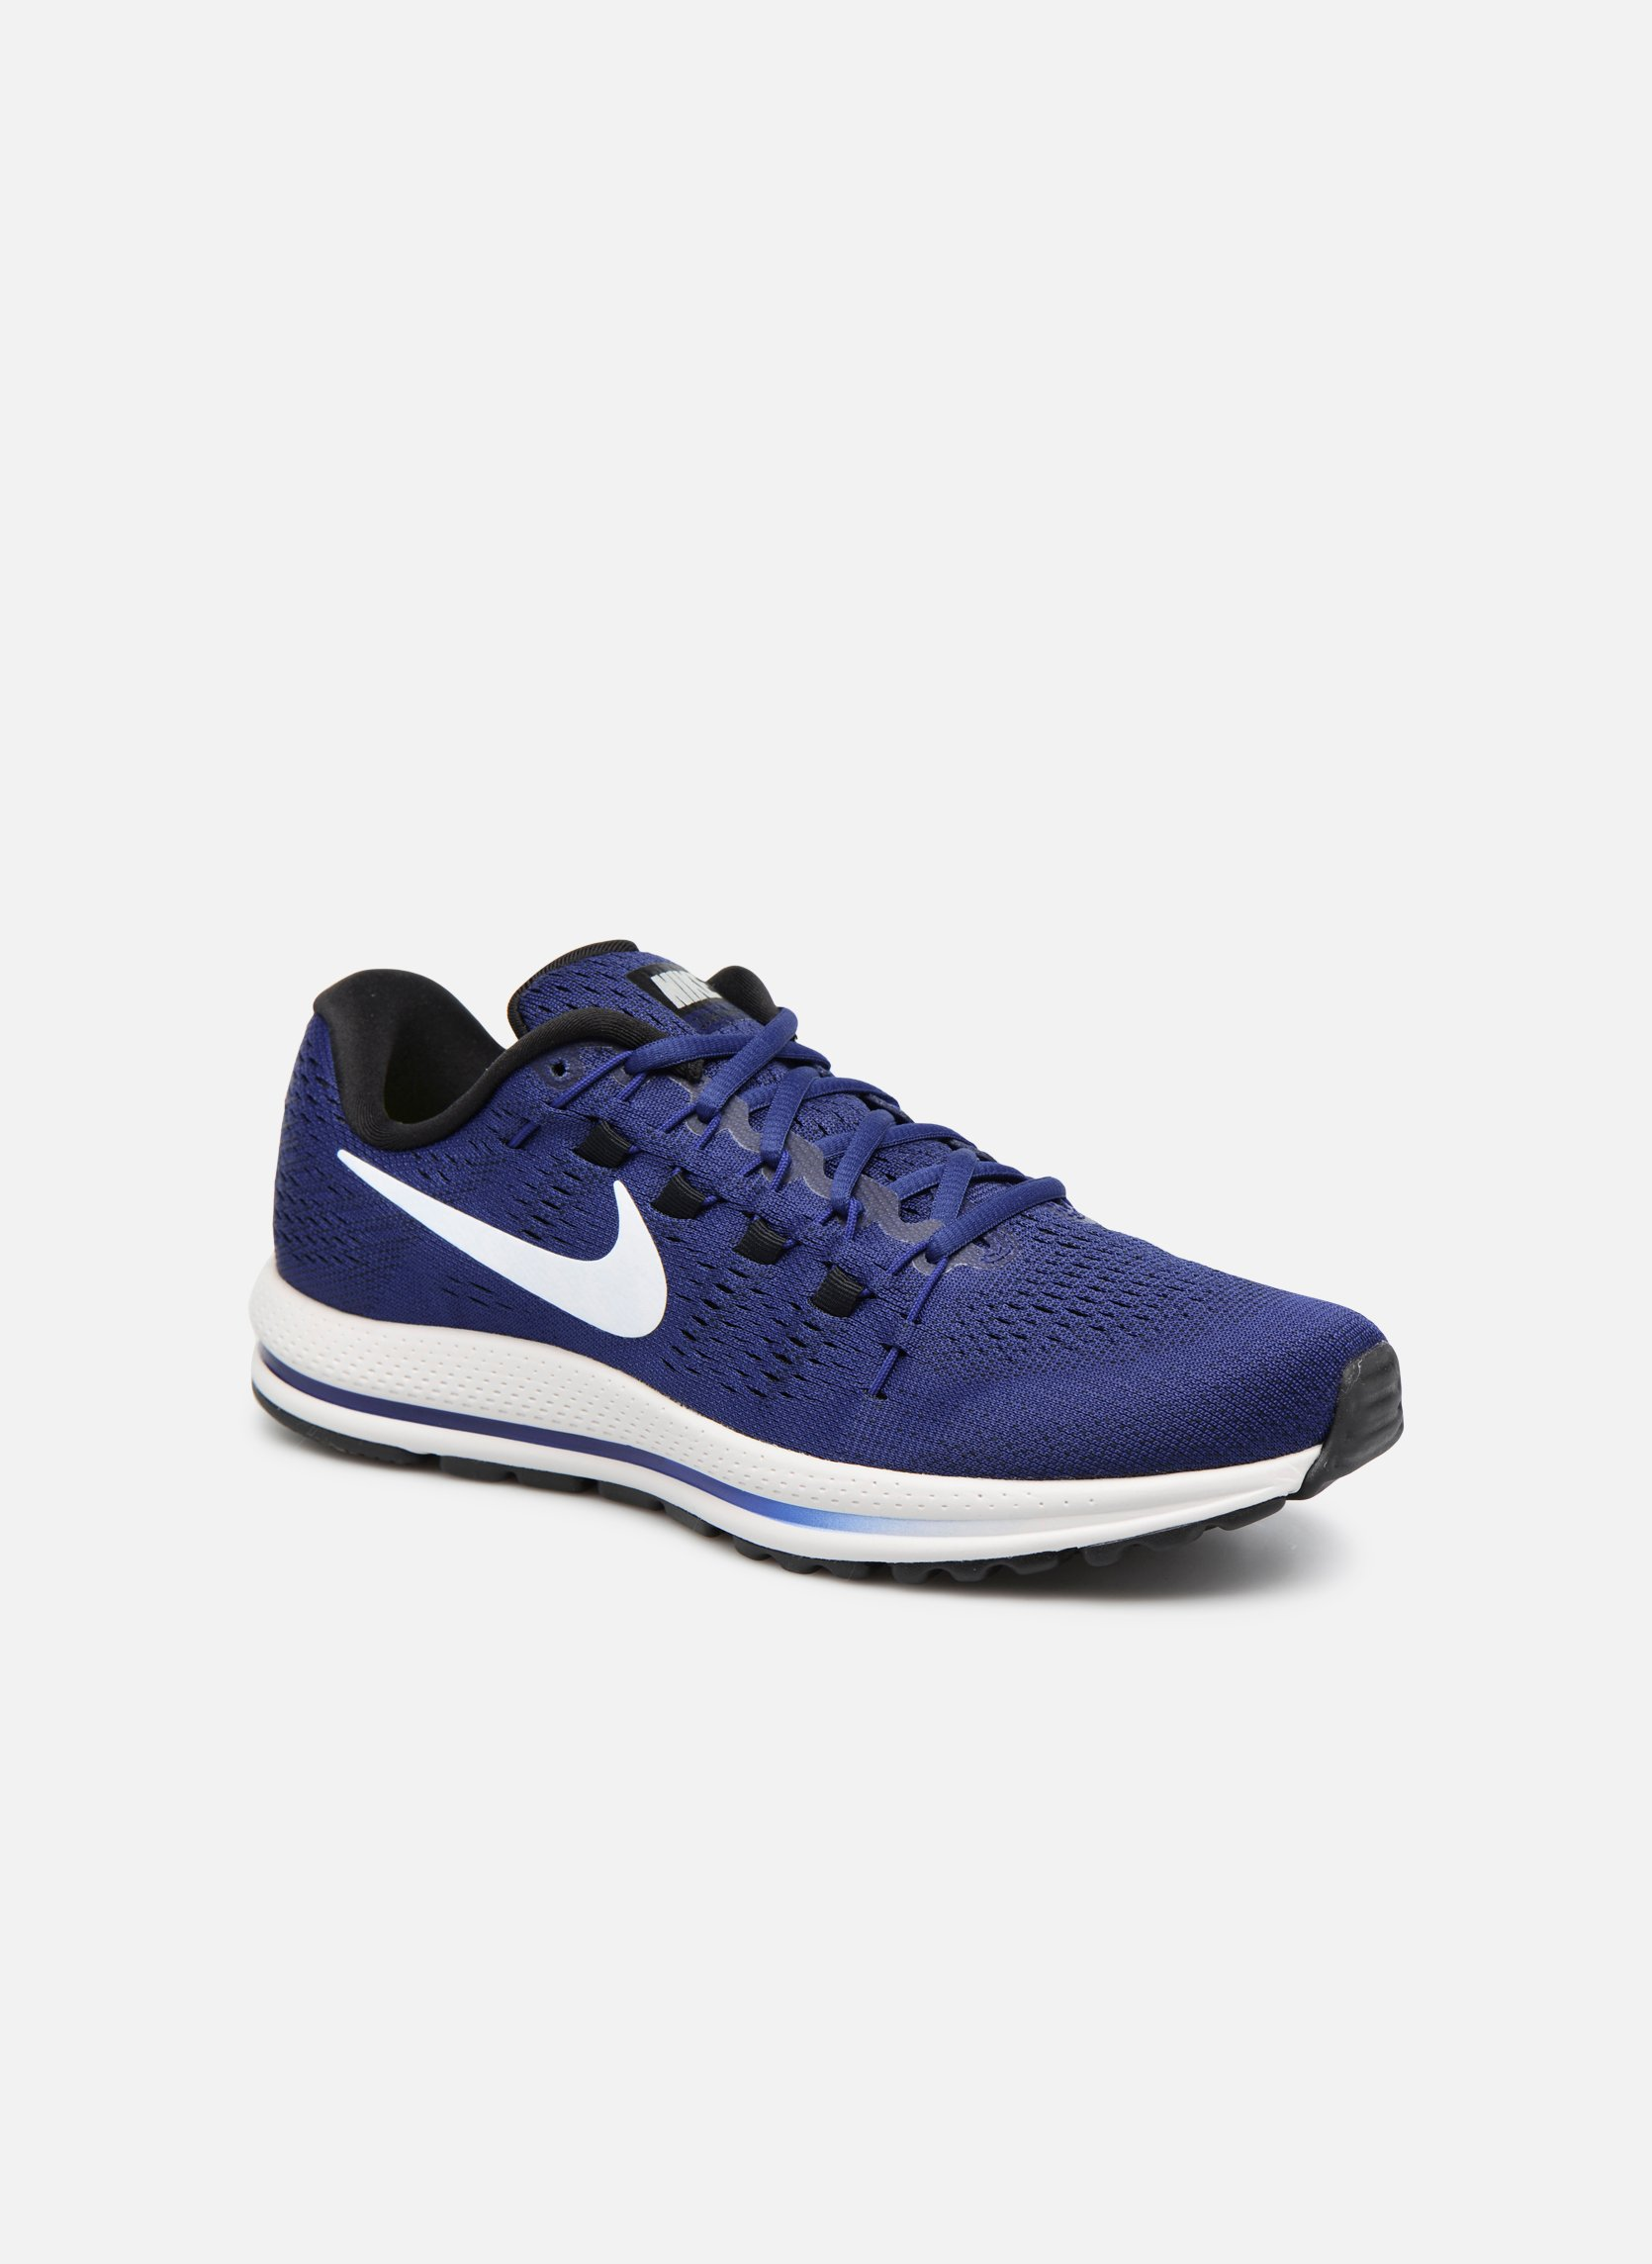 Nike Nike Air Zoom Vomero 12